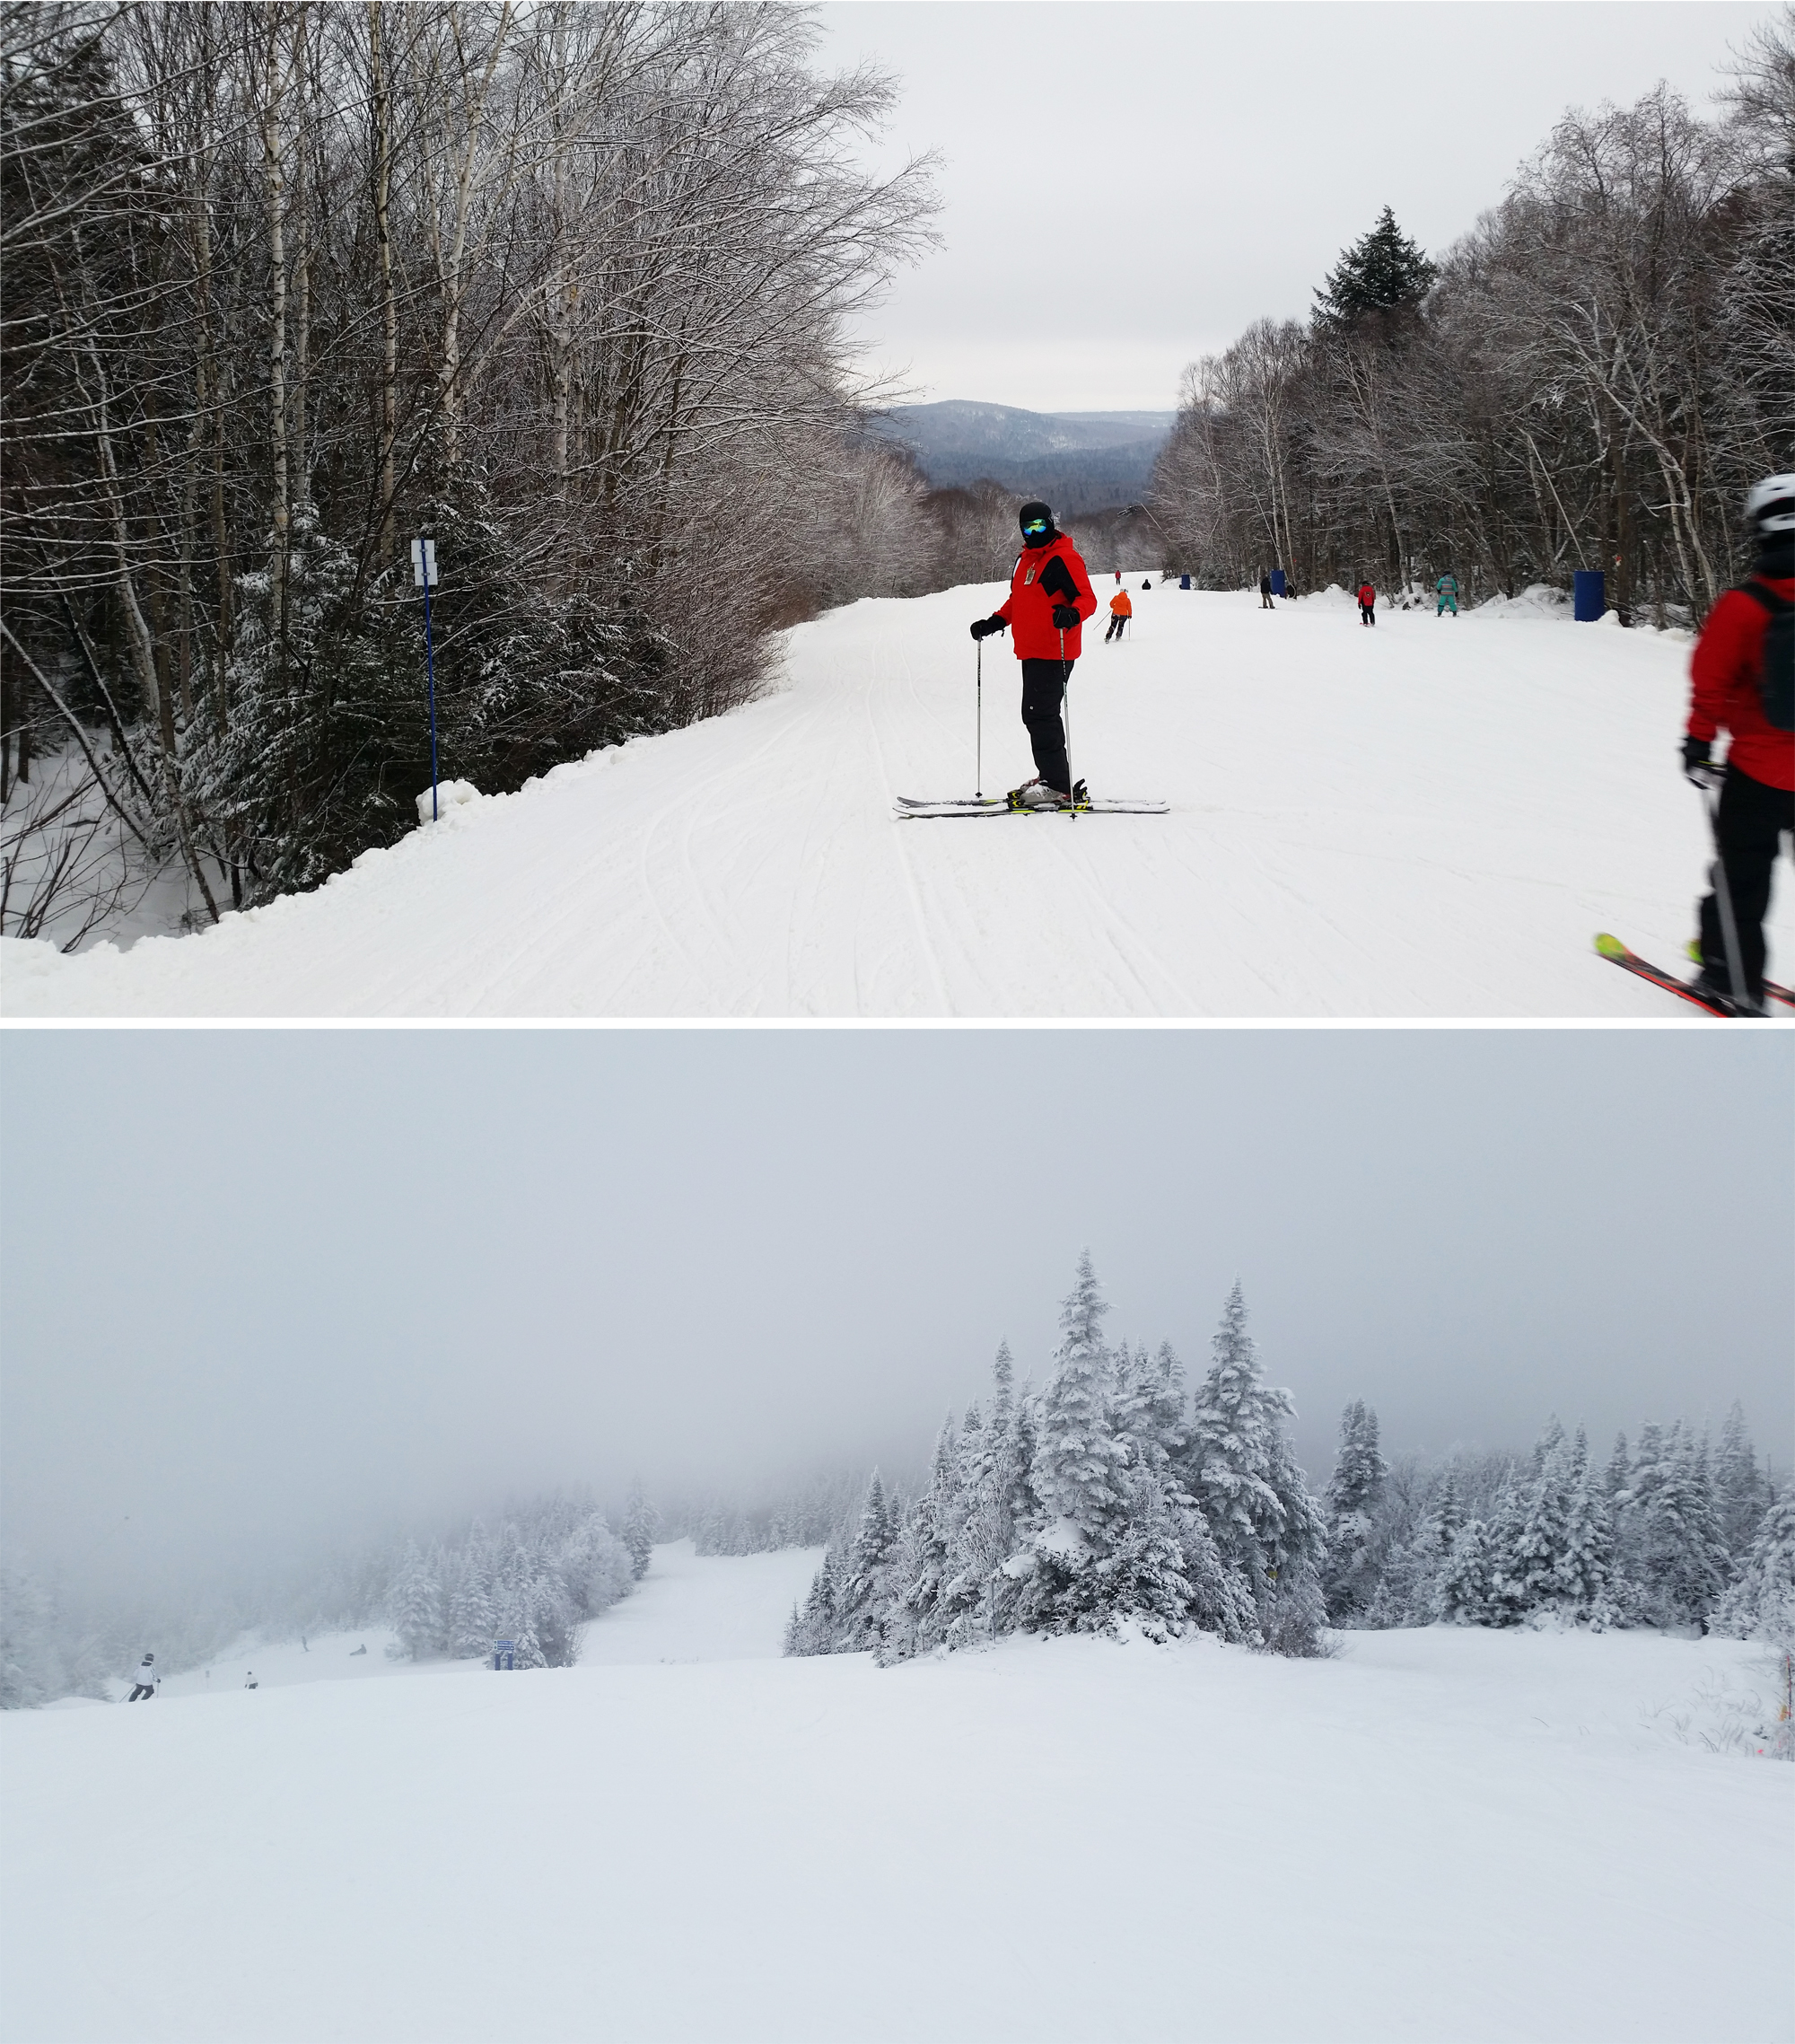 Skiing at Mont Tremblant